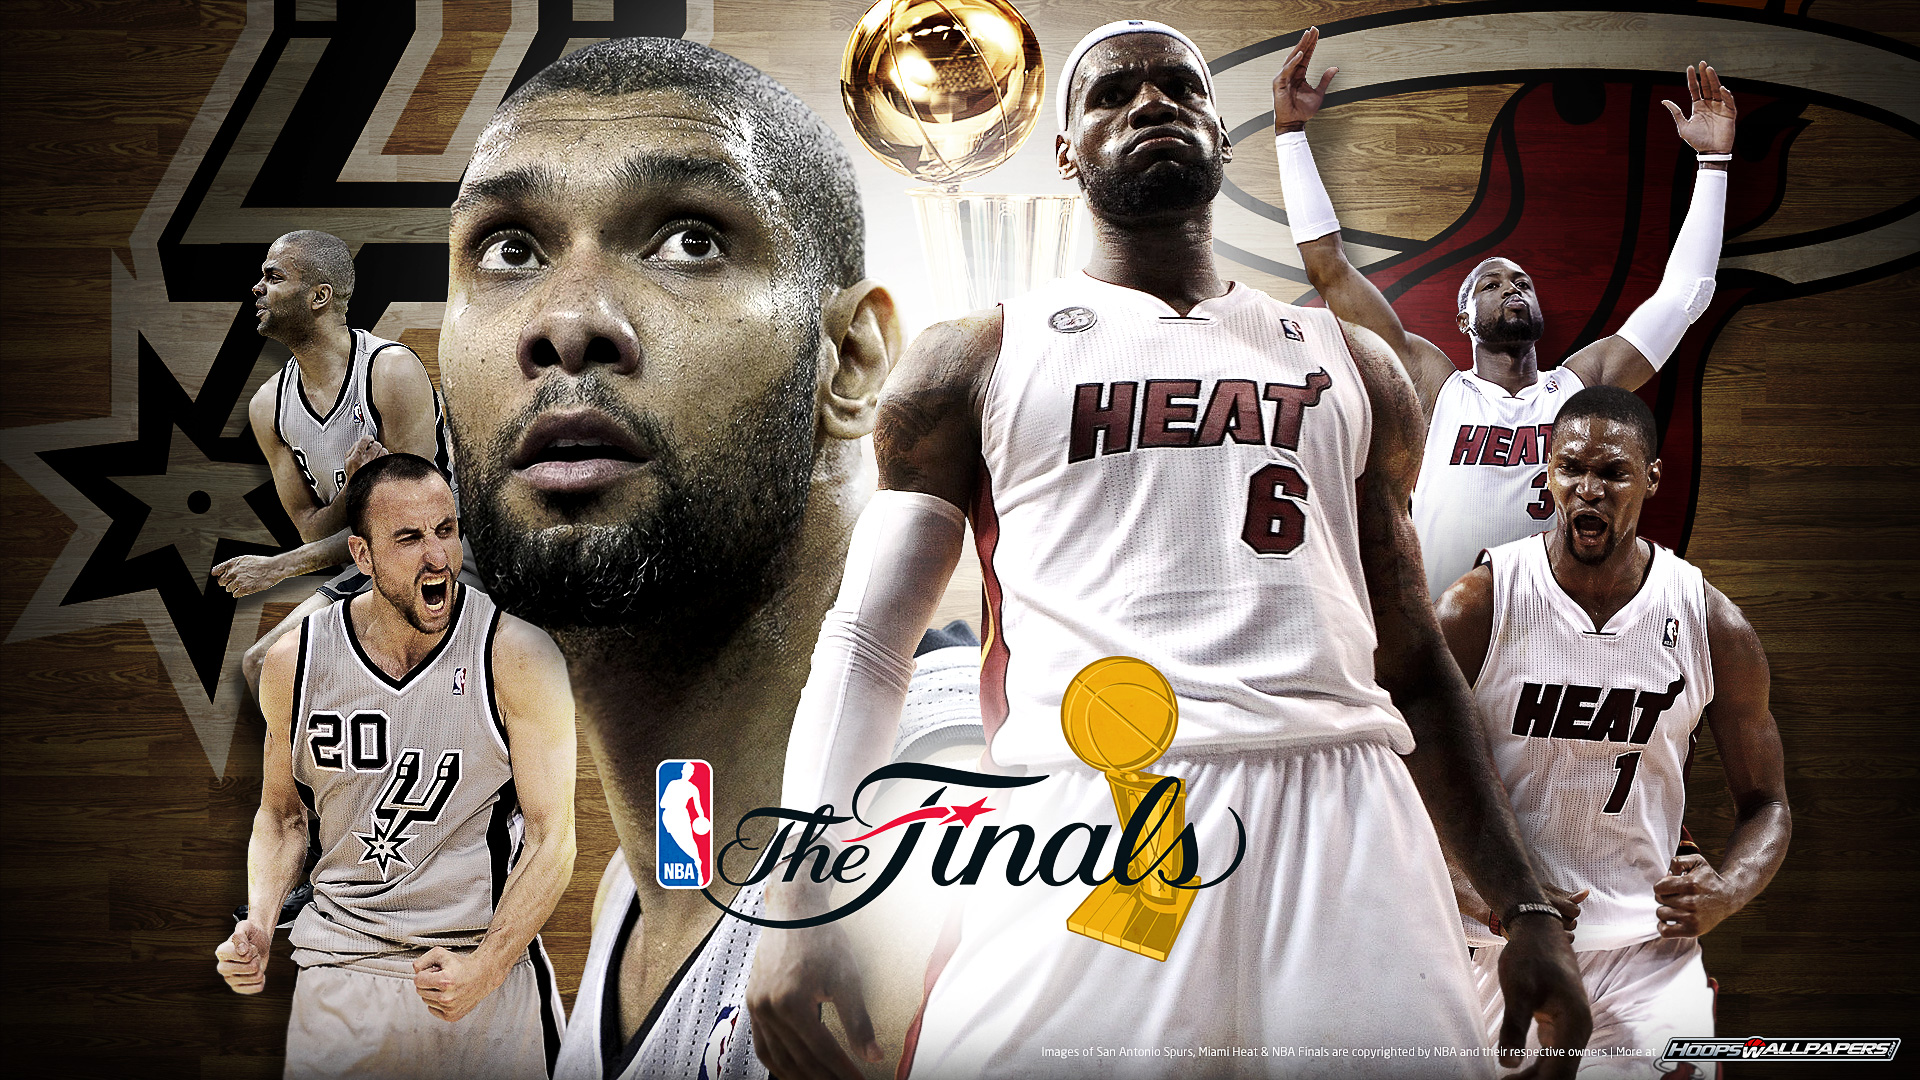 Hoopswallpapers Com Get The Latest Hd And Mobile Nba Wallpapers